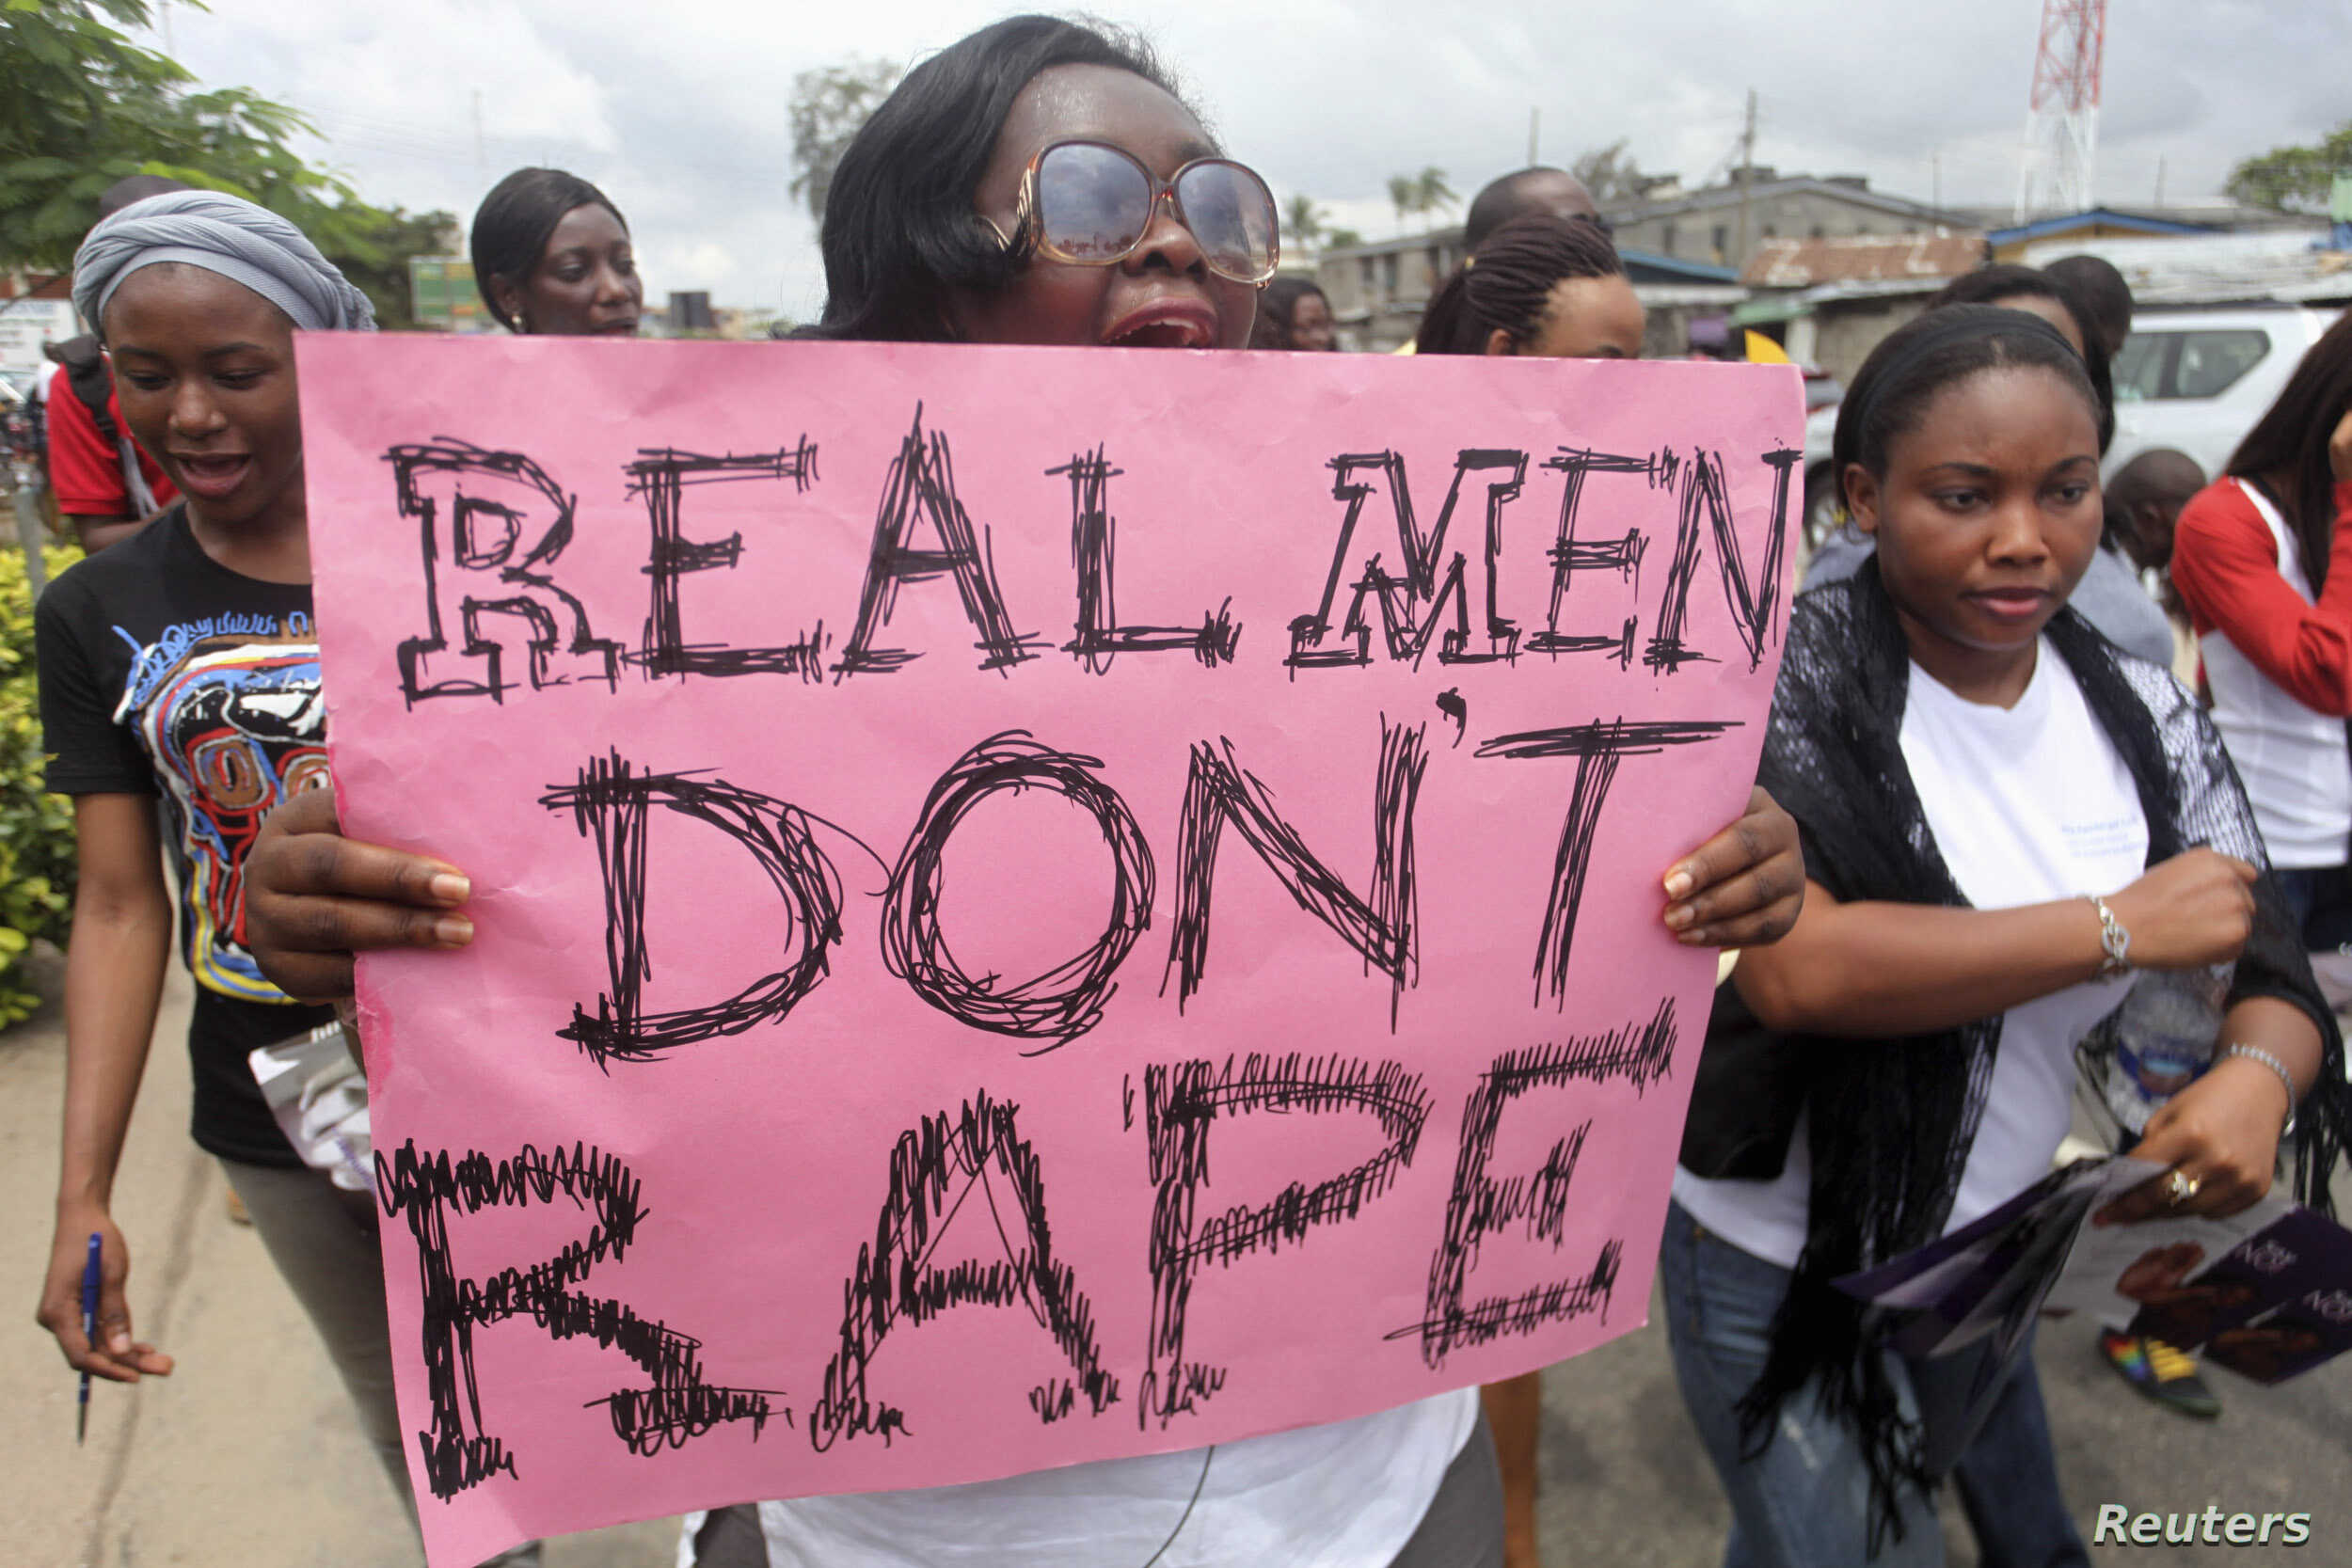 Epidemic' of Rape Assailed in Nigeria | Voice of America - English